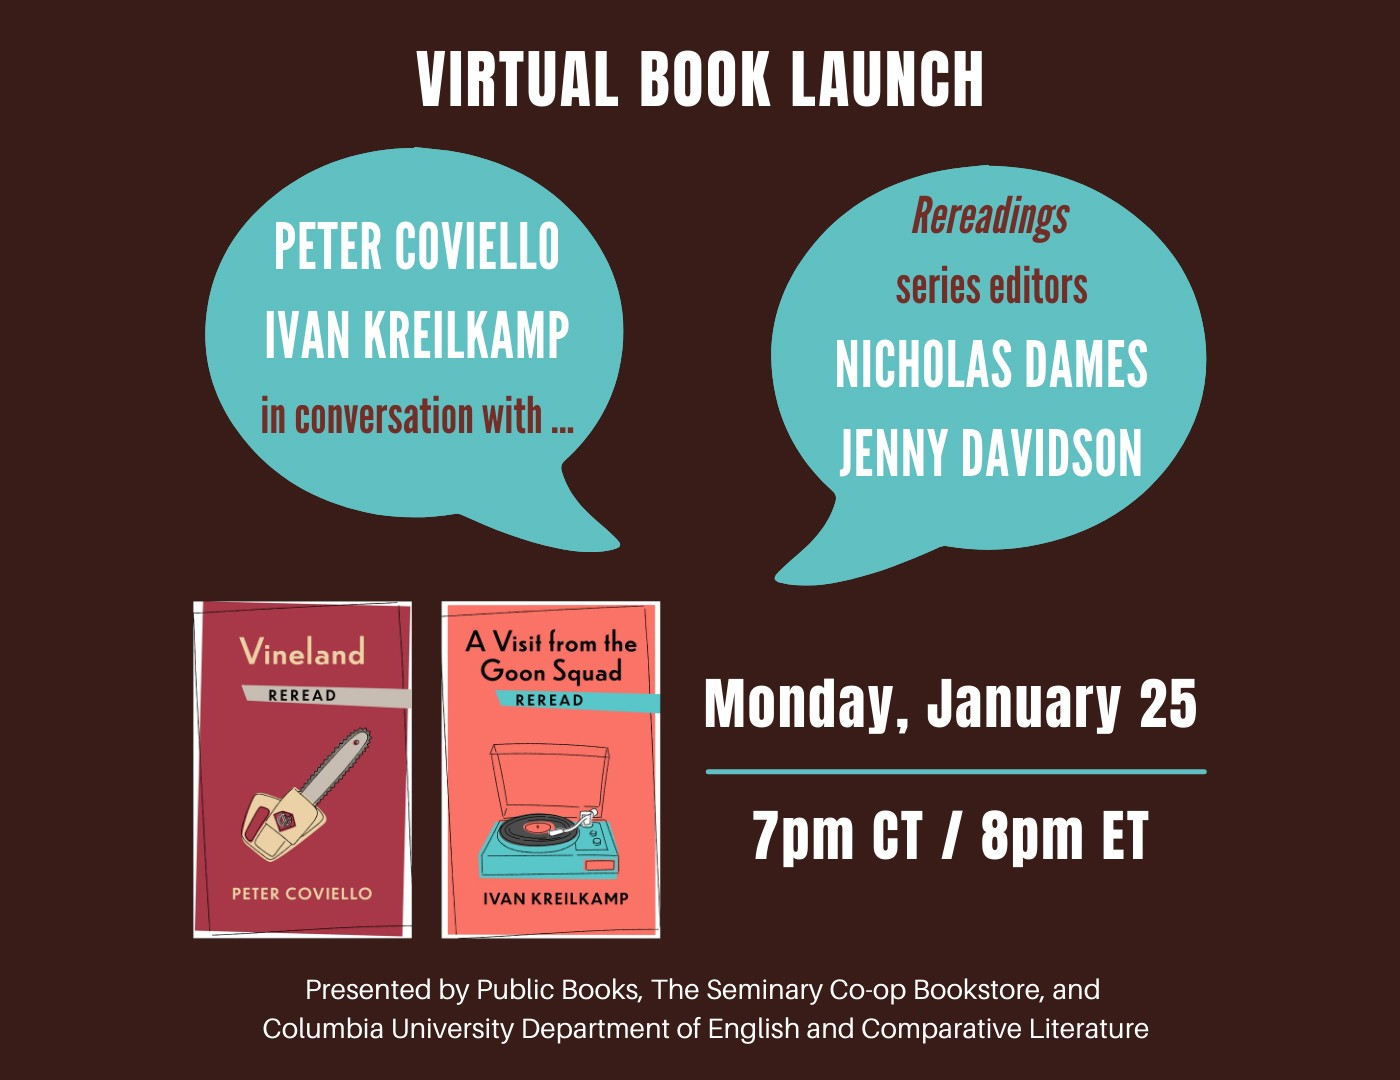 Virtual Book Launch